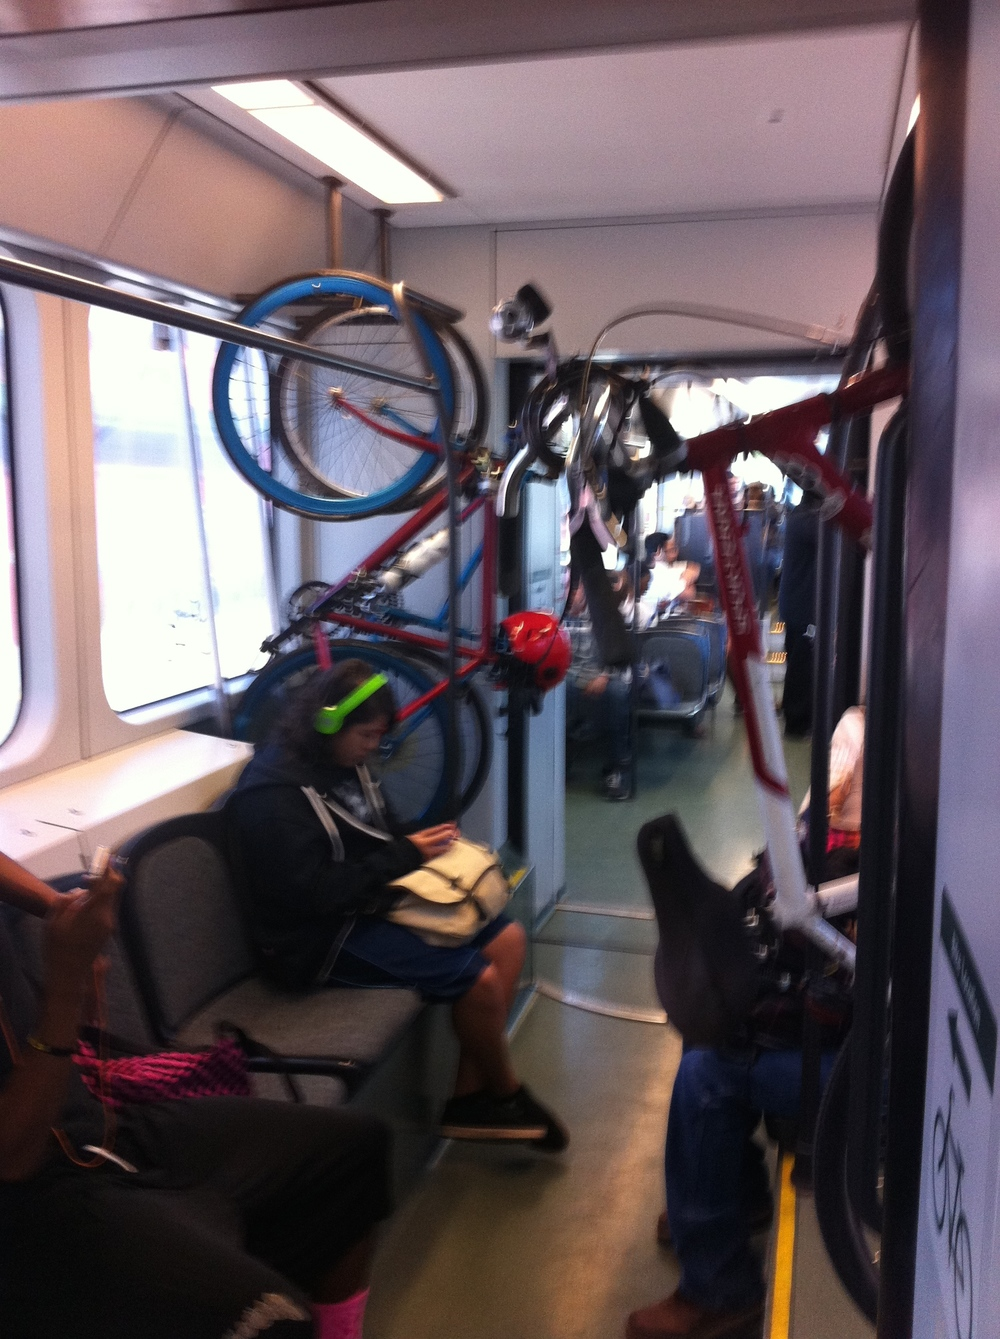 Riding the LRT to downtown with the students and cyclists was a much more urban experience than we had anticipated.